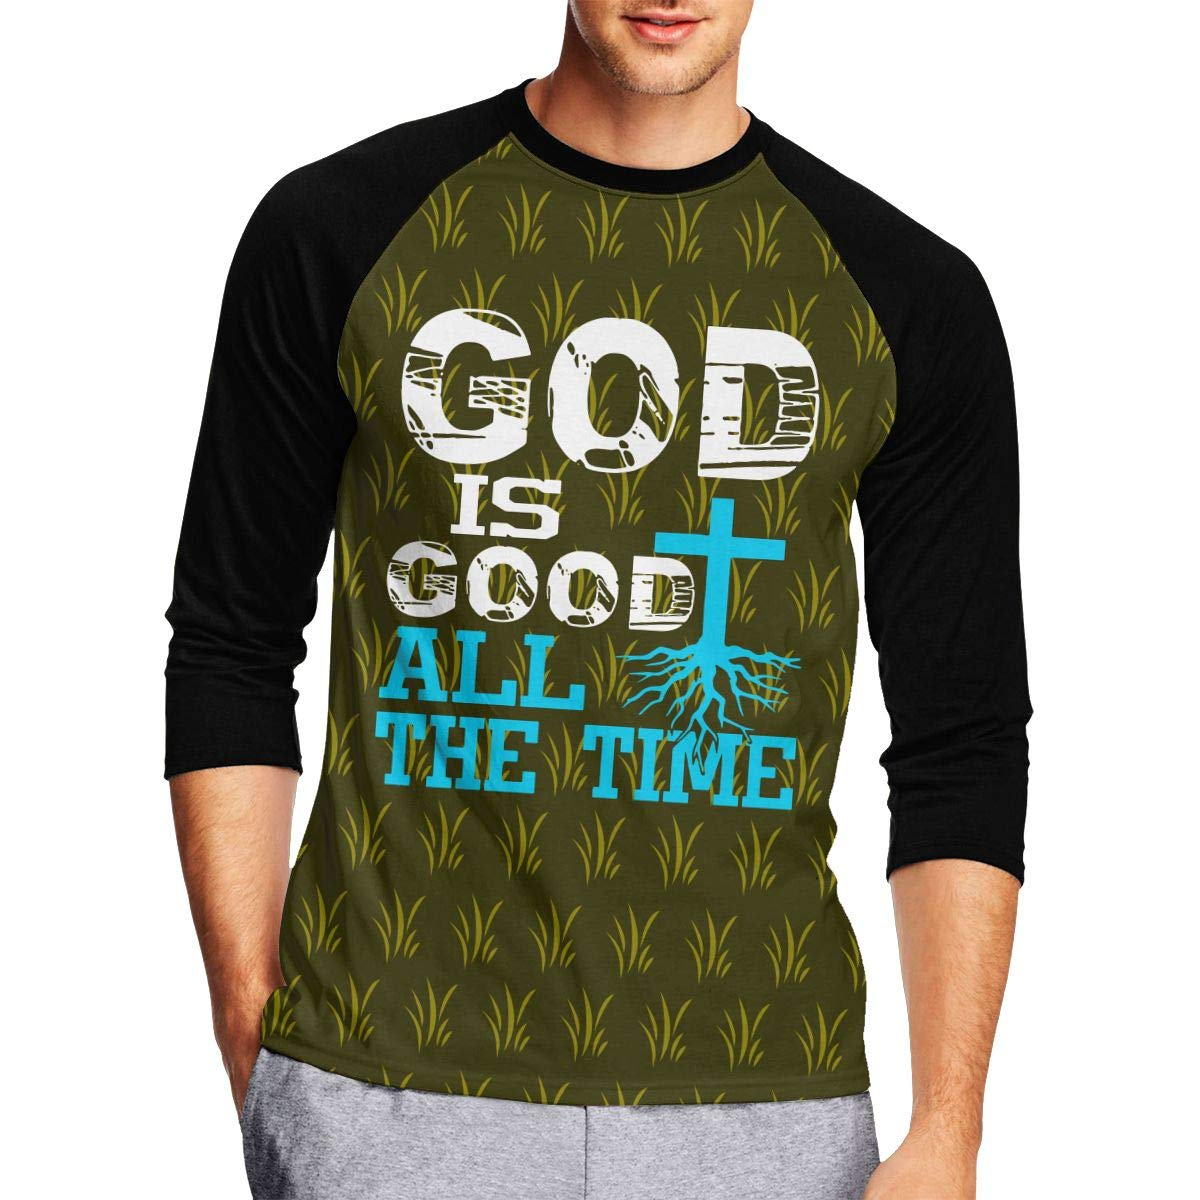 362f24ae50 DFGHJZH-L God is Good All The Time Christian Men's Cool Adult Long-Sleeved T -Shirts   Amazon.com